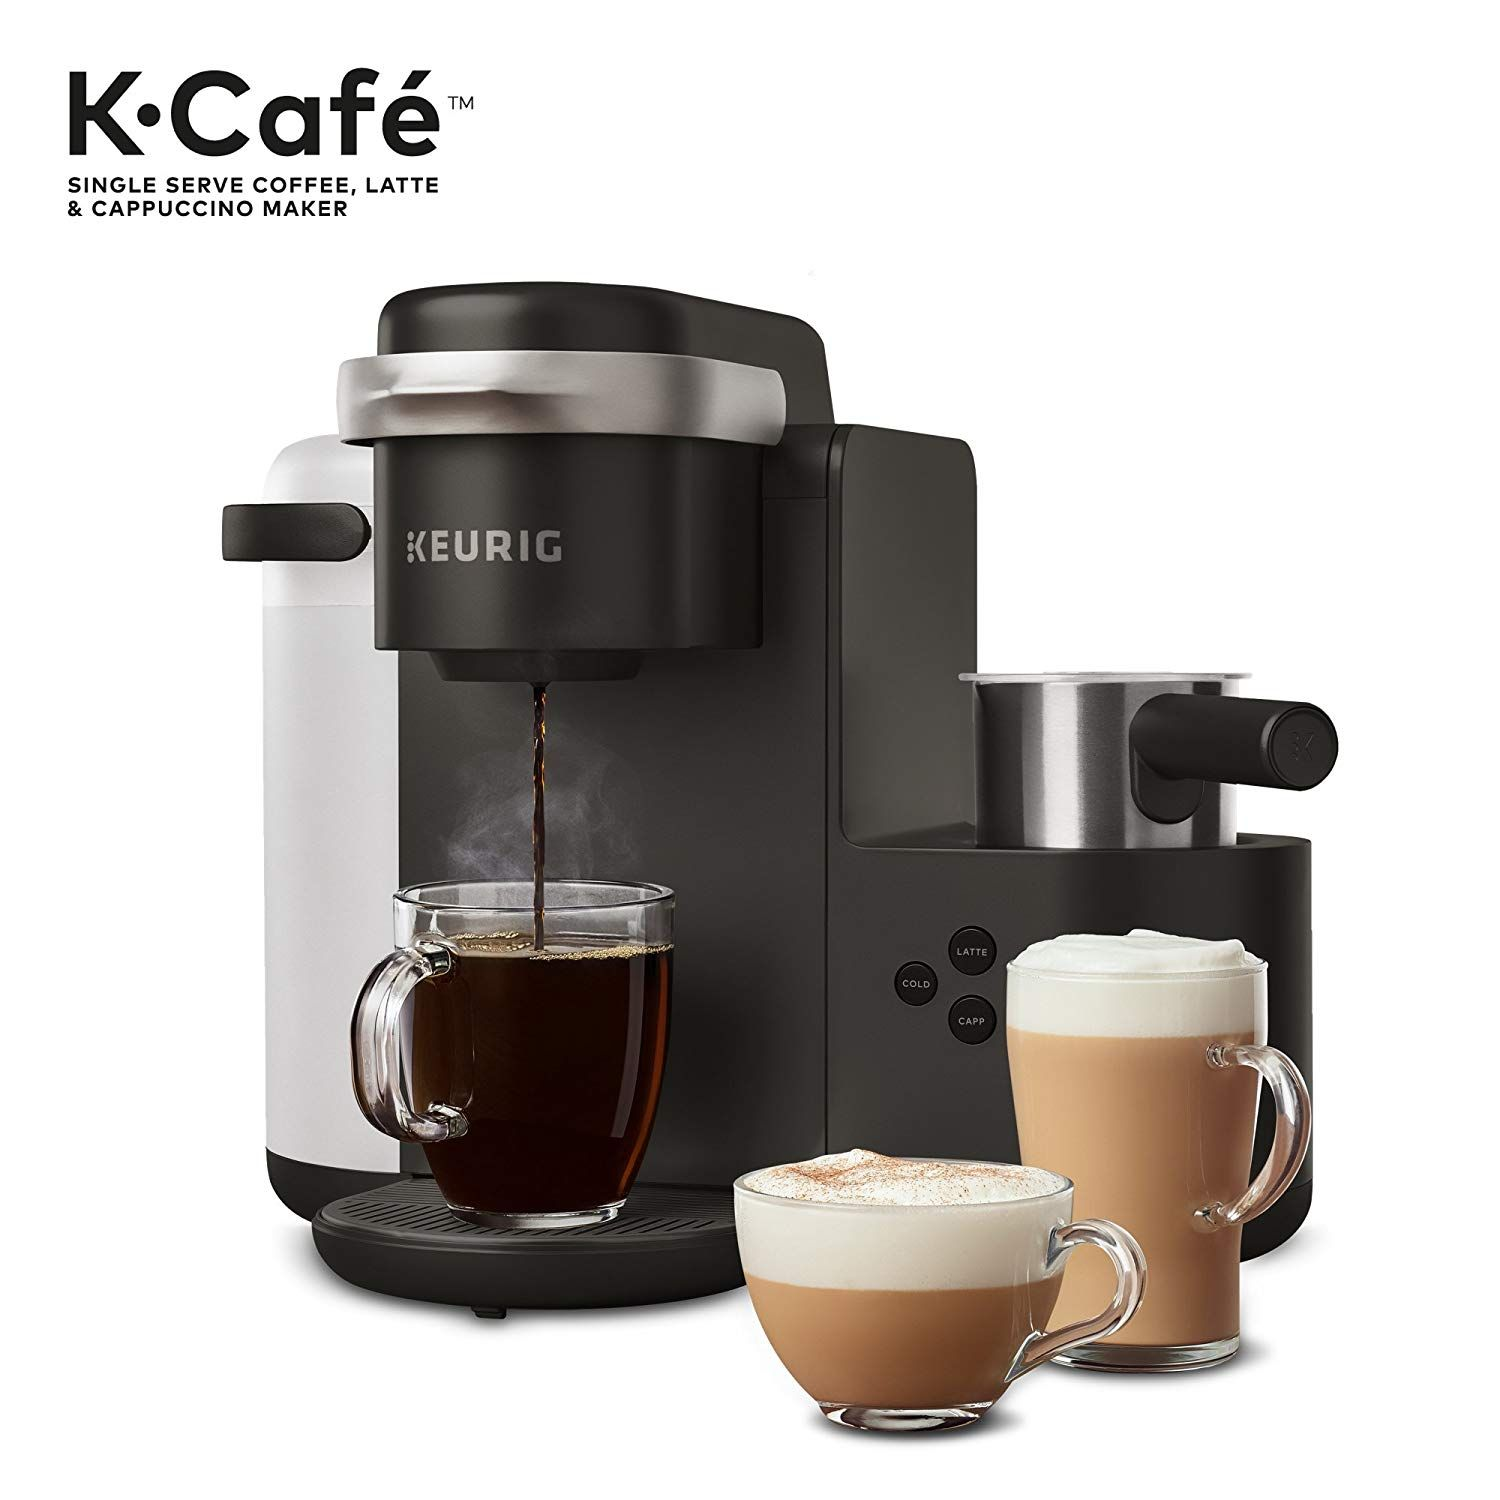 Keurig K Cafe Single Serve K Cup Coffee Maker Cappuccino Maker